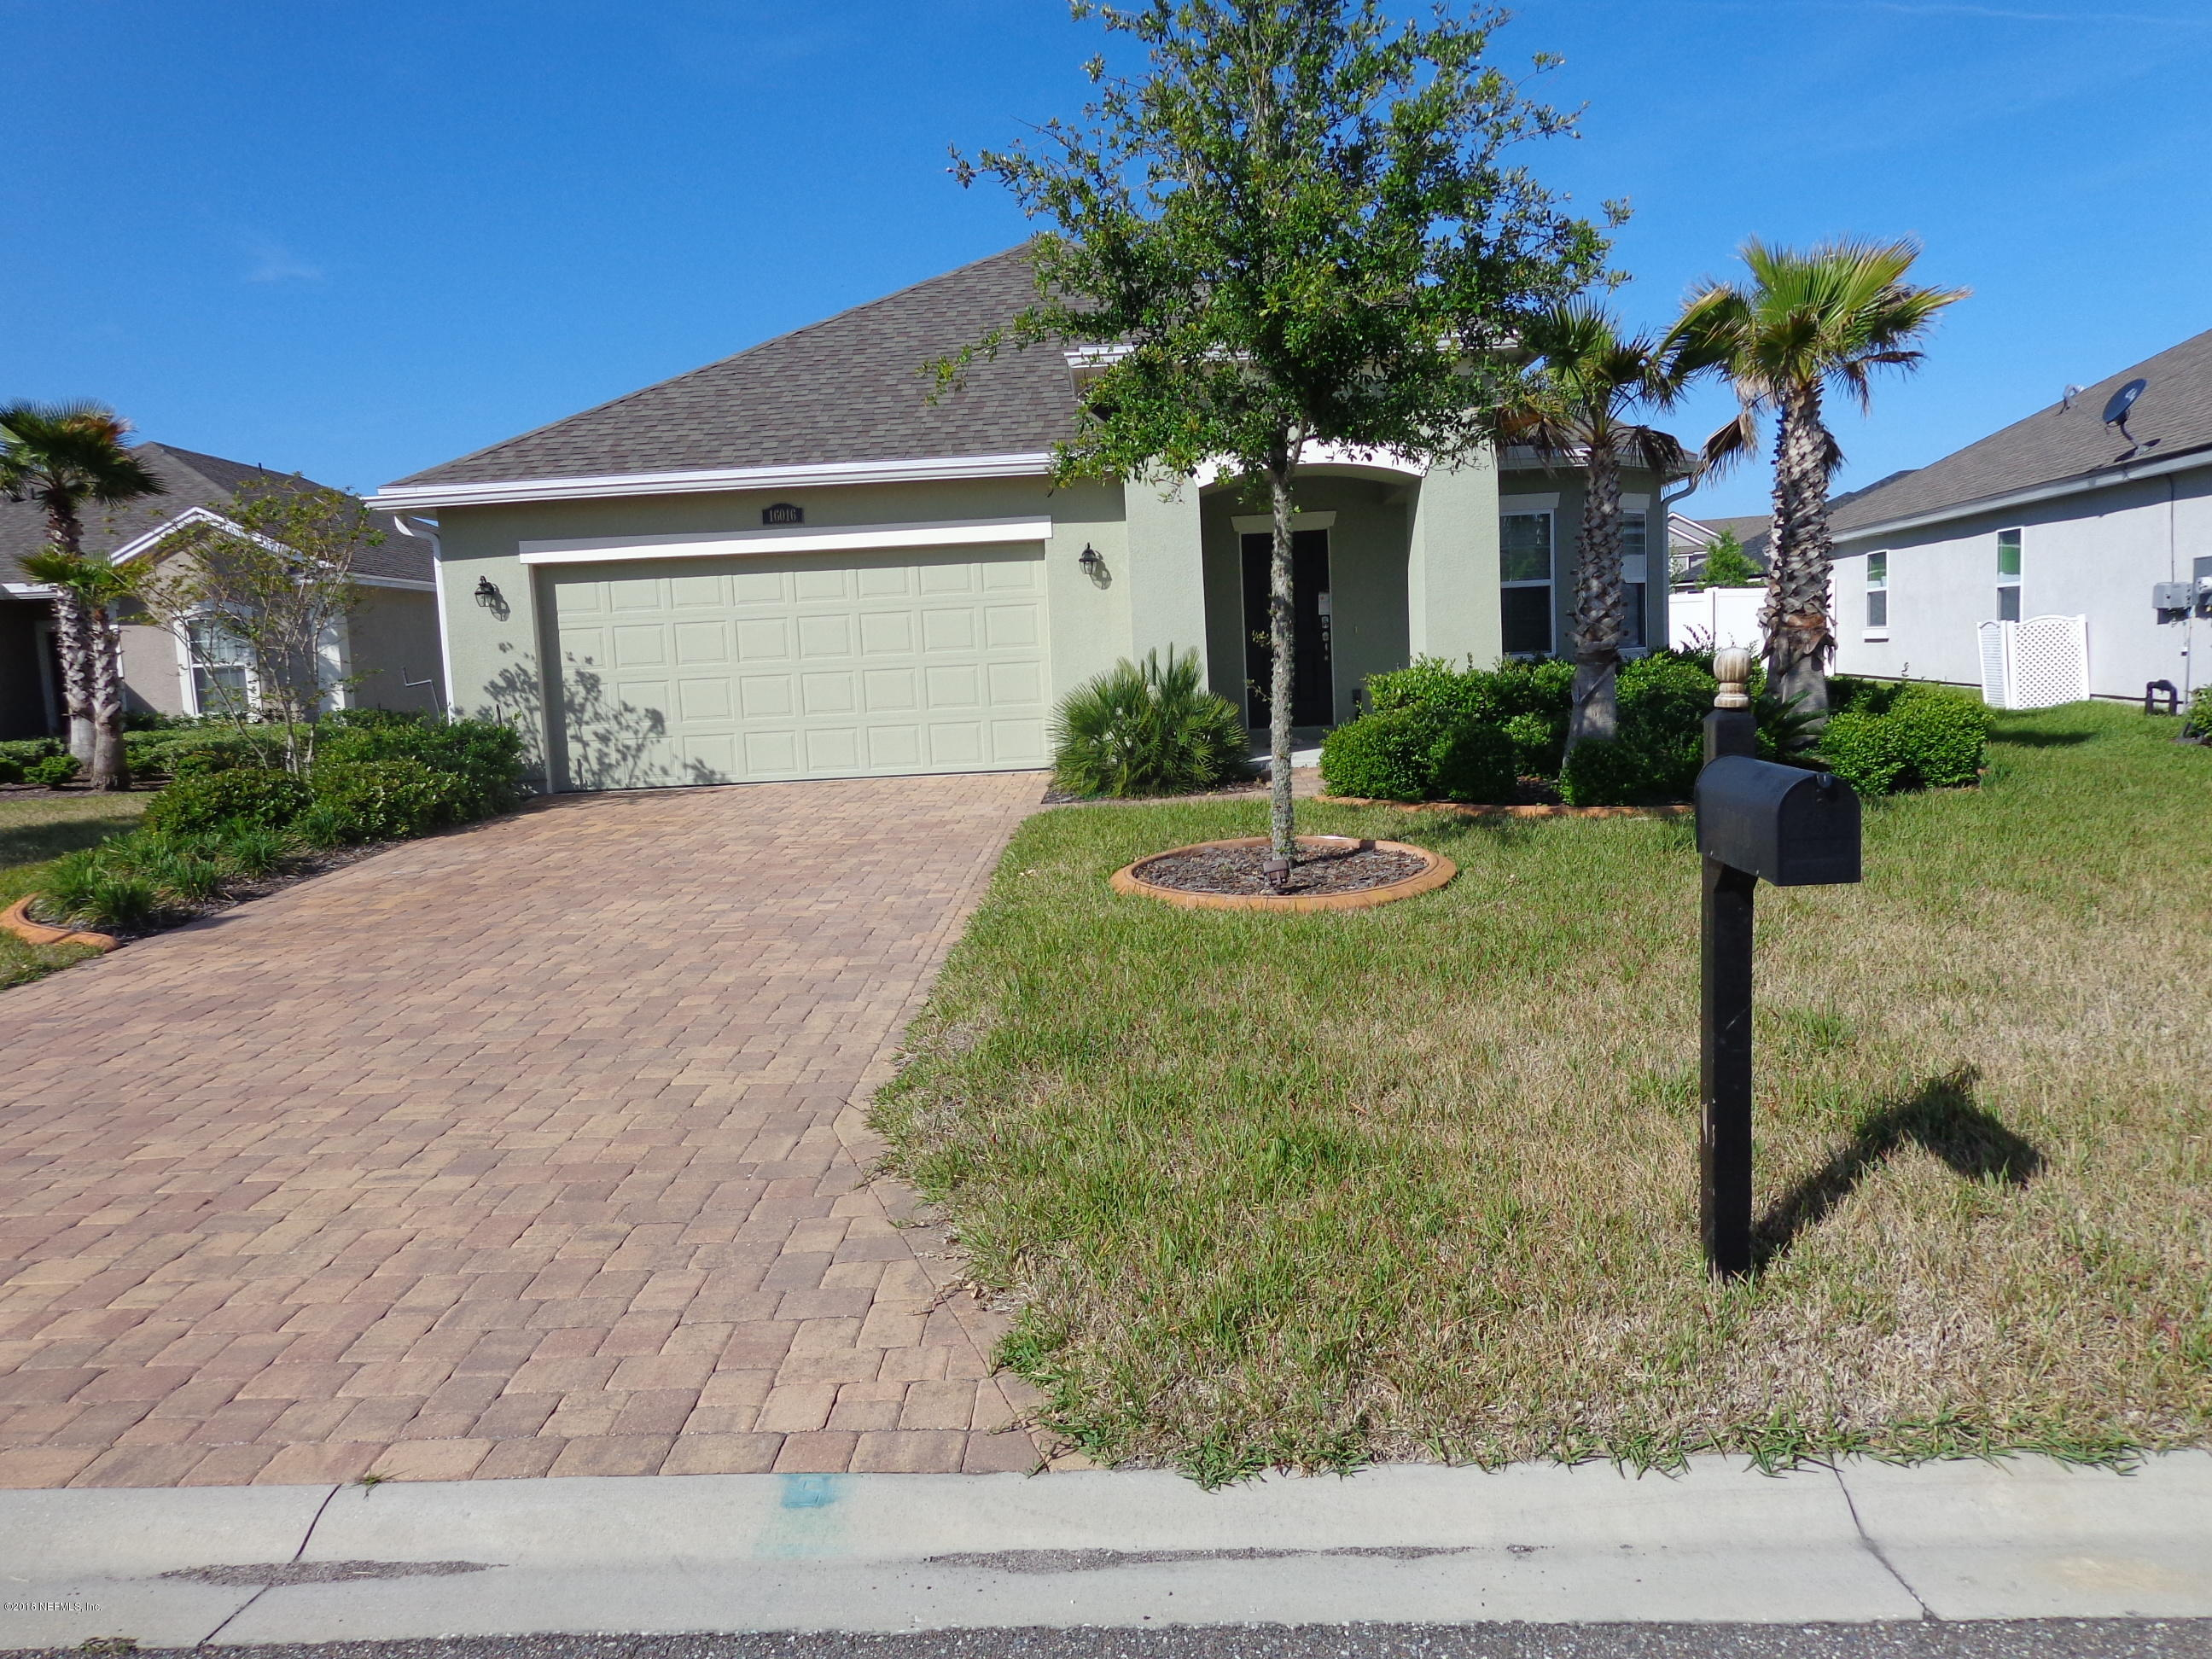 16016 WILLOW BLUFF, JACKSONVILLE, FLORIDA 32218, 3 Bedrooms Bedrooms, ,2 BathroomsBathrooms,Residential - single family,For sale,WILLOW BLUFF,928354